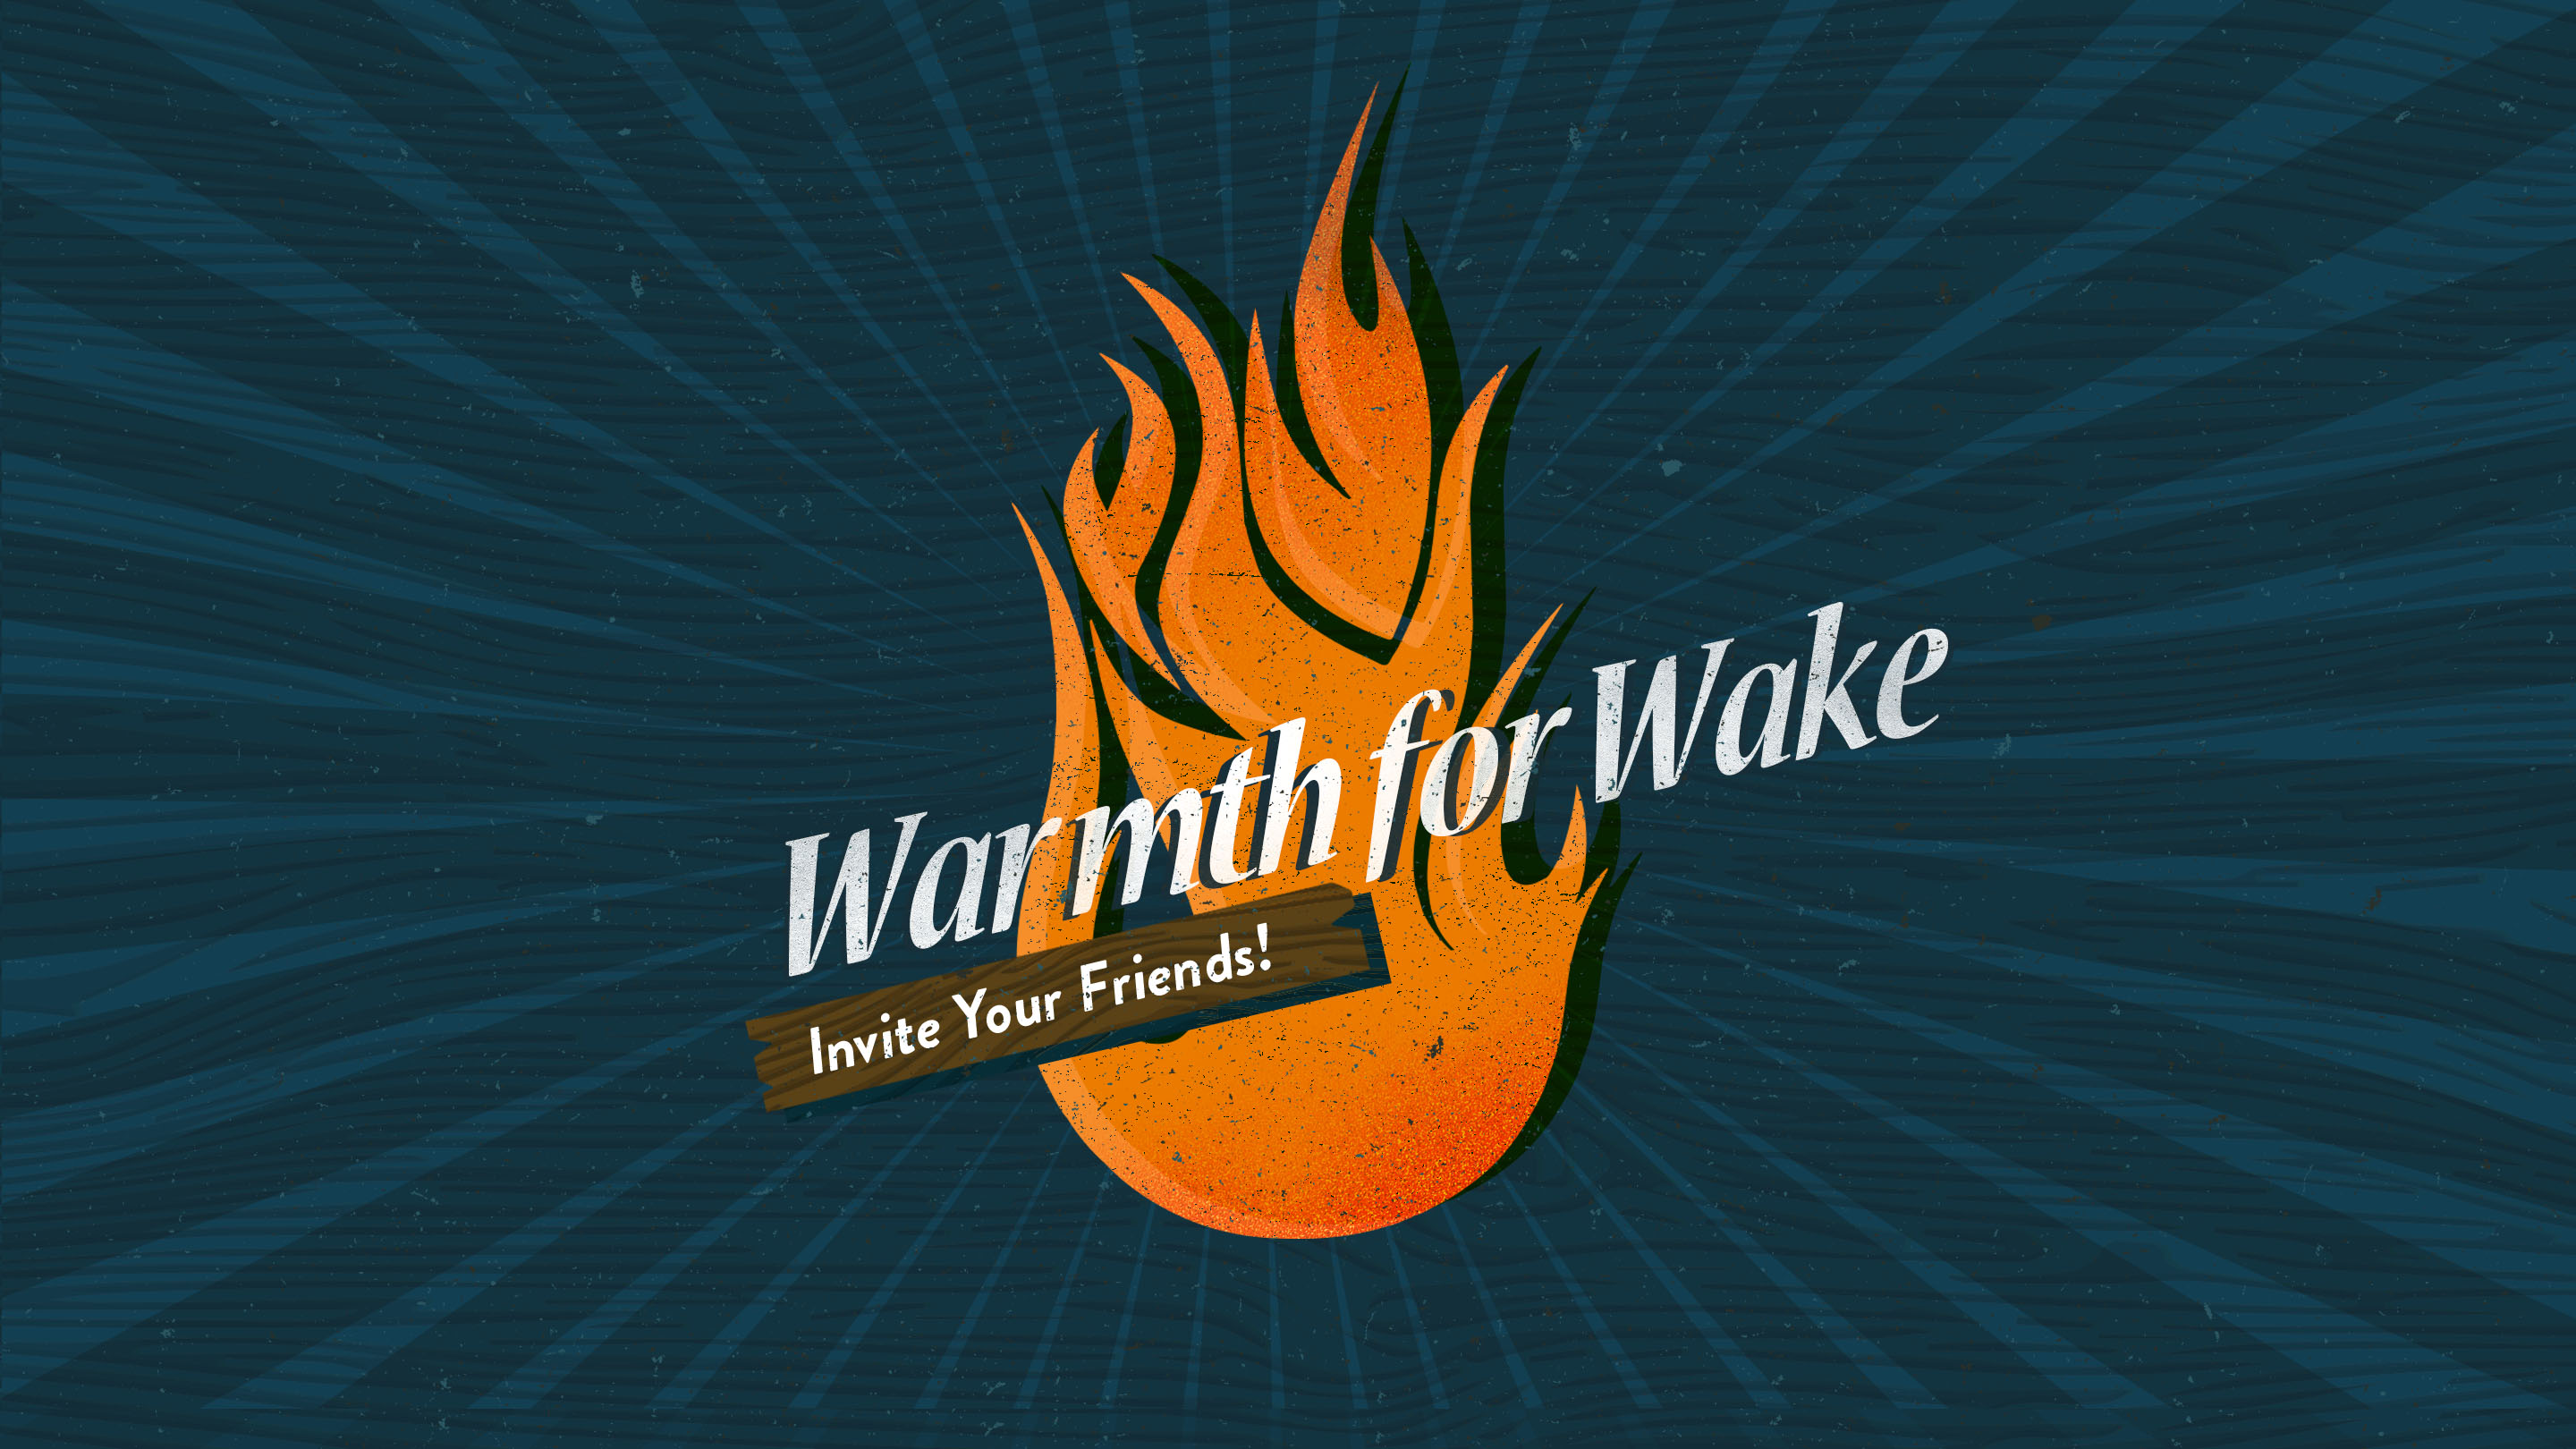 Warnth for Wake